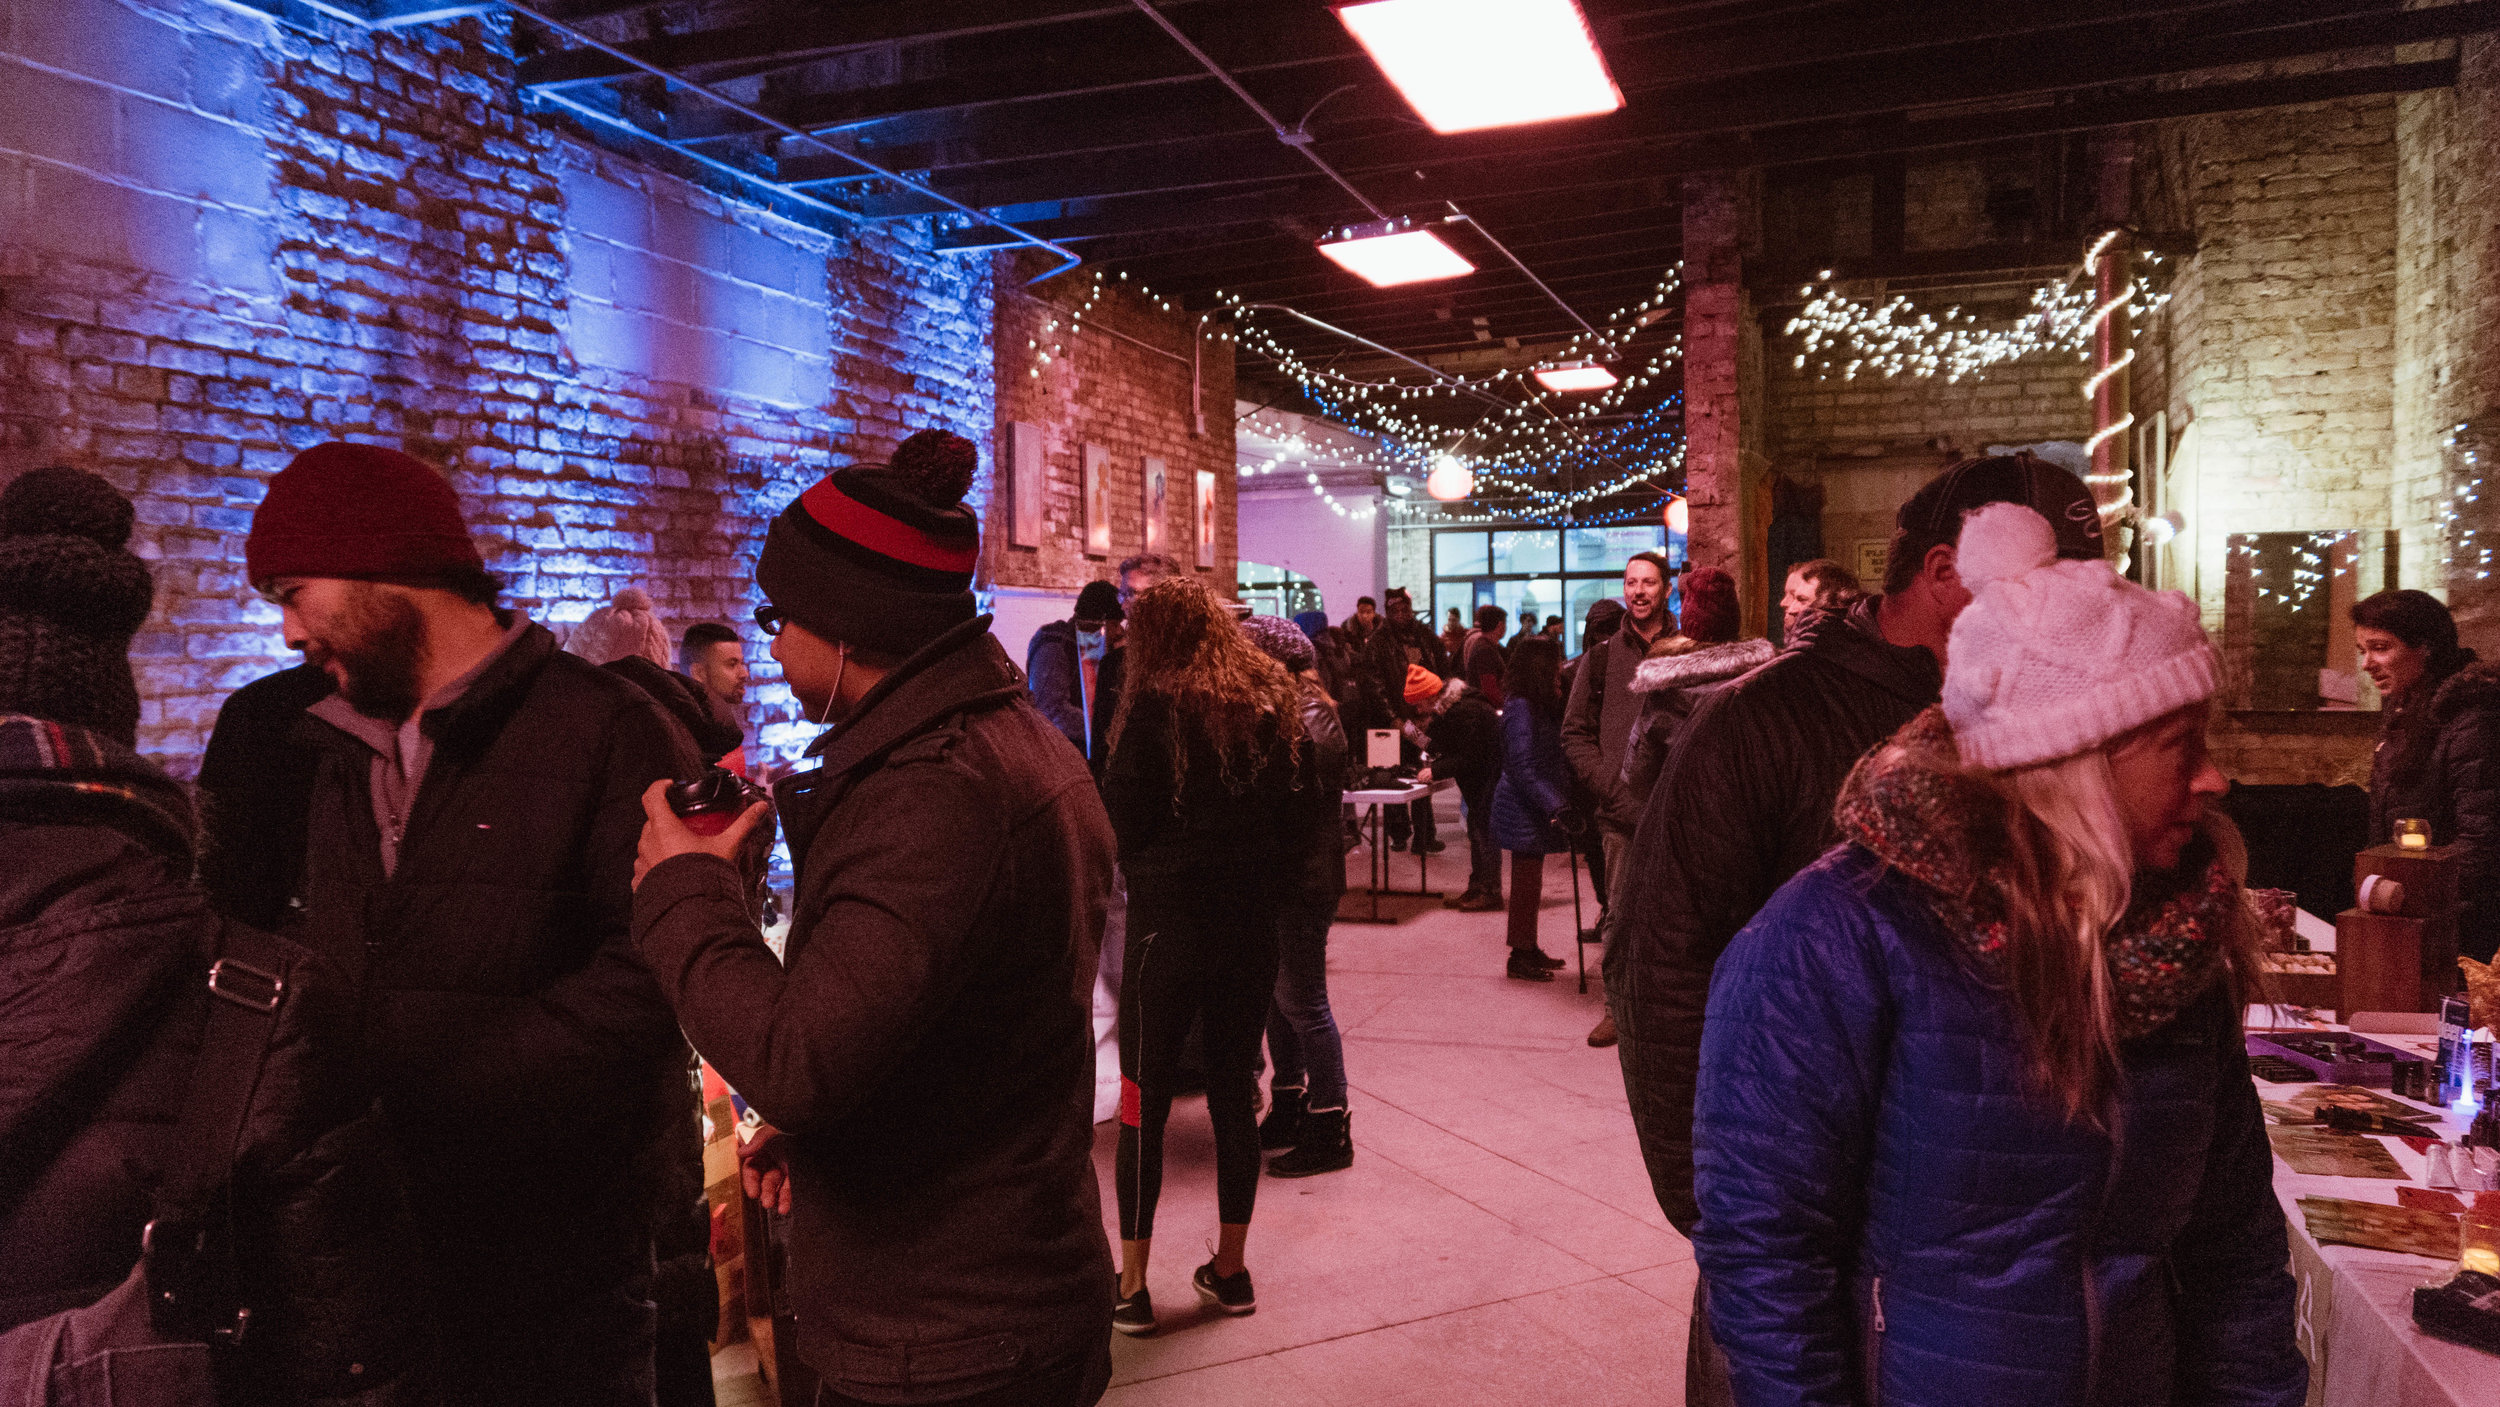 30 vendors, restaurants, artists, and organizations were represented at the market